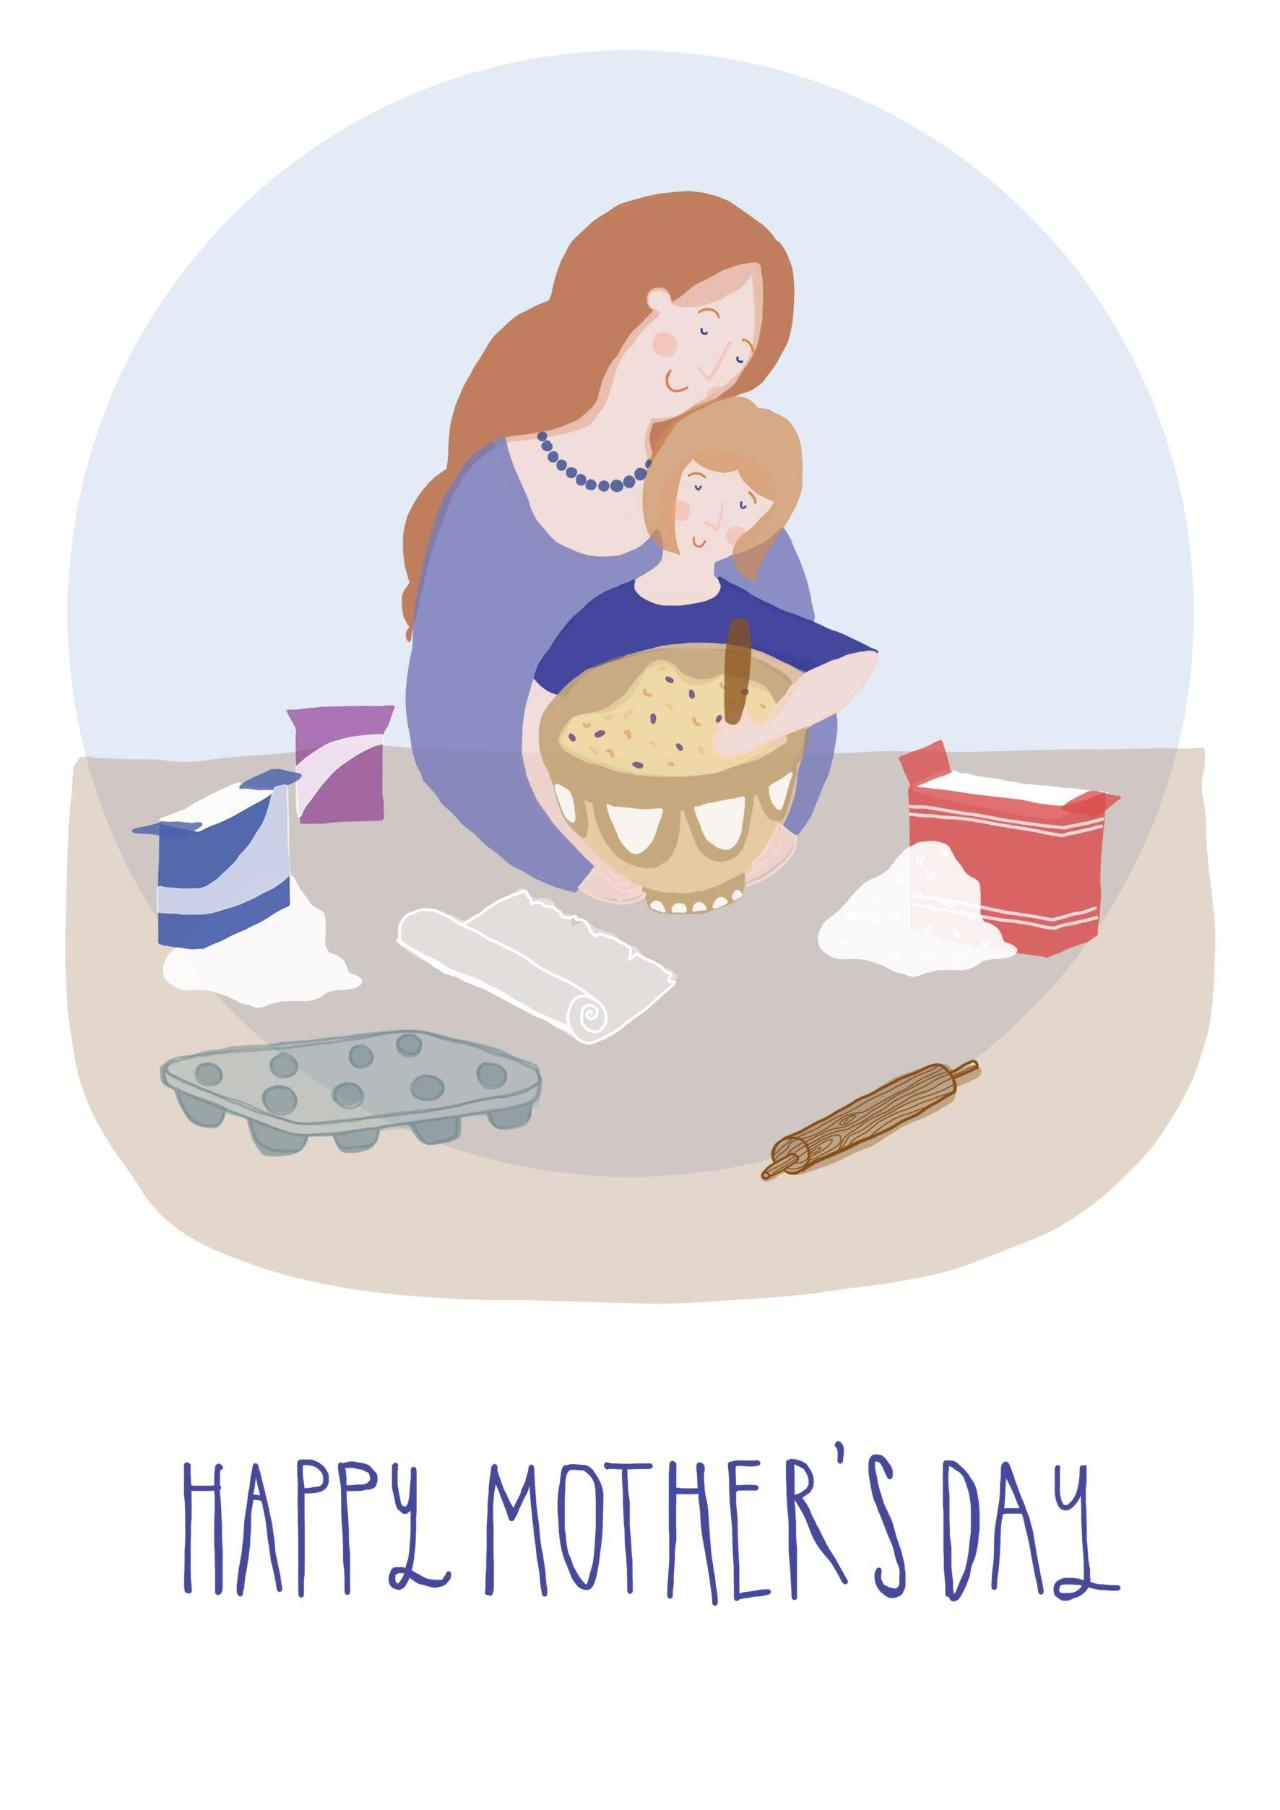 Card showing mum baking with child